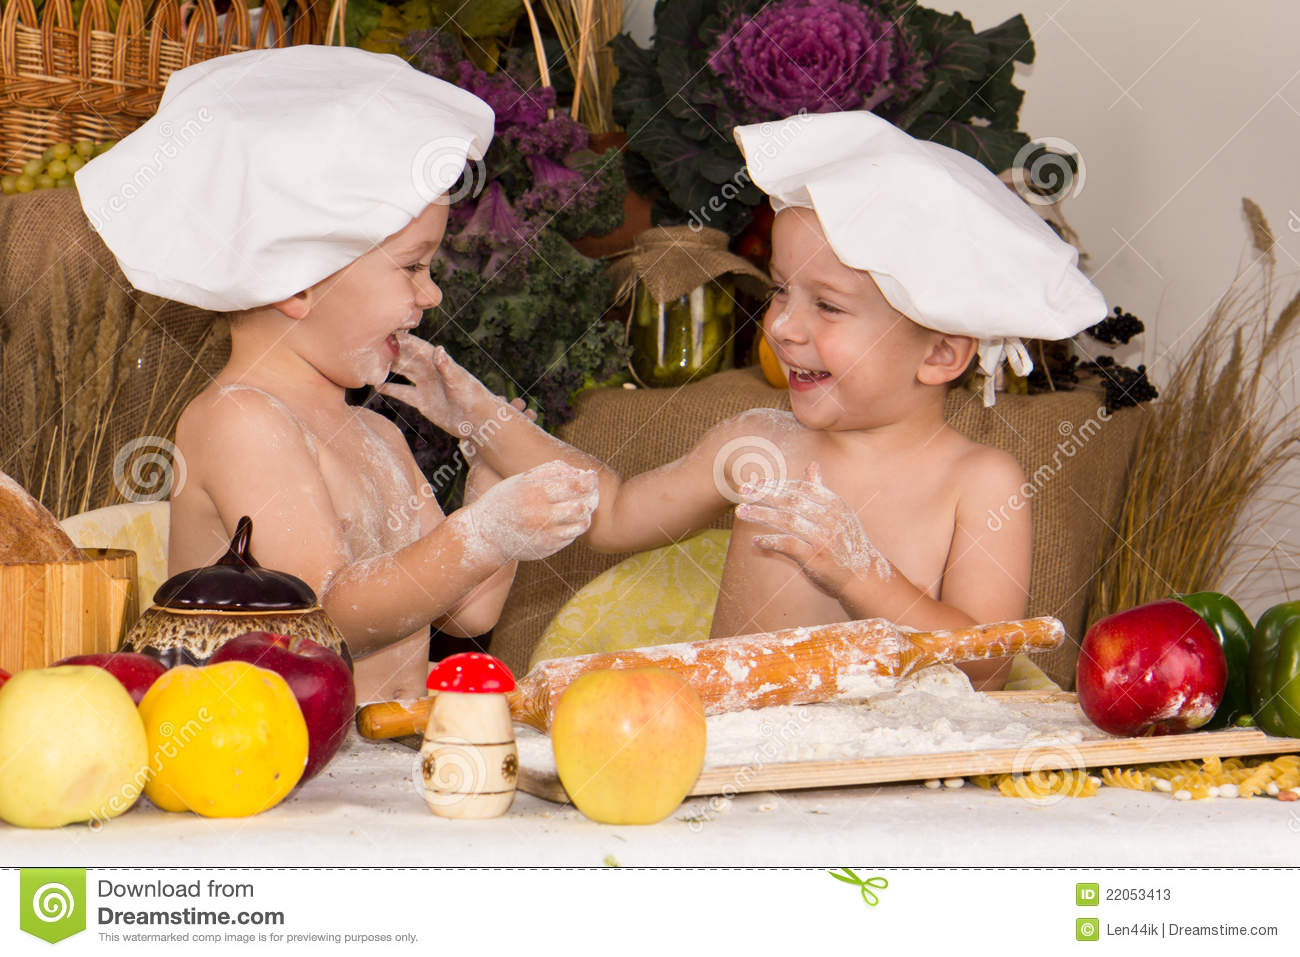 Kids dressed as chefs cooking